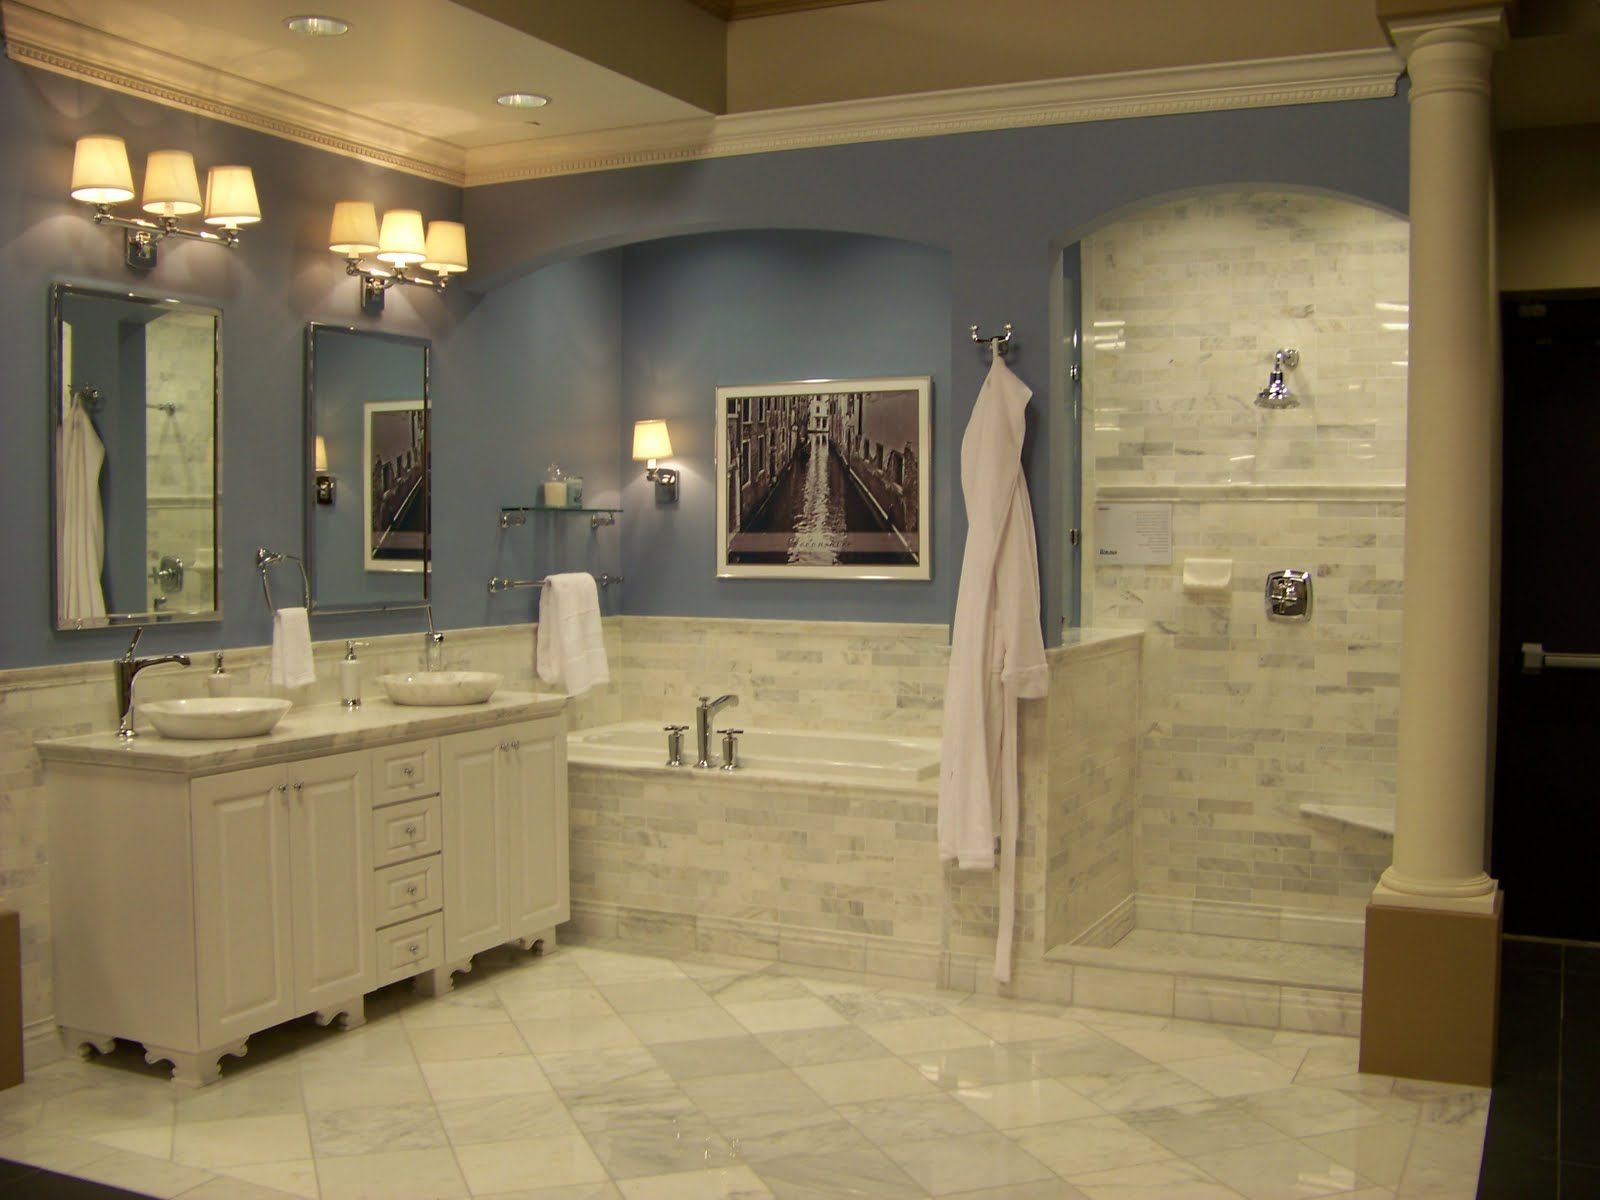 Old World Bathroom Design Ideas: Old World Looking Bathrooms